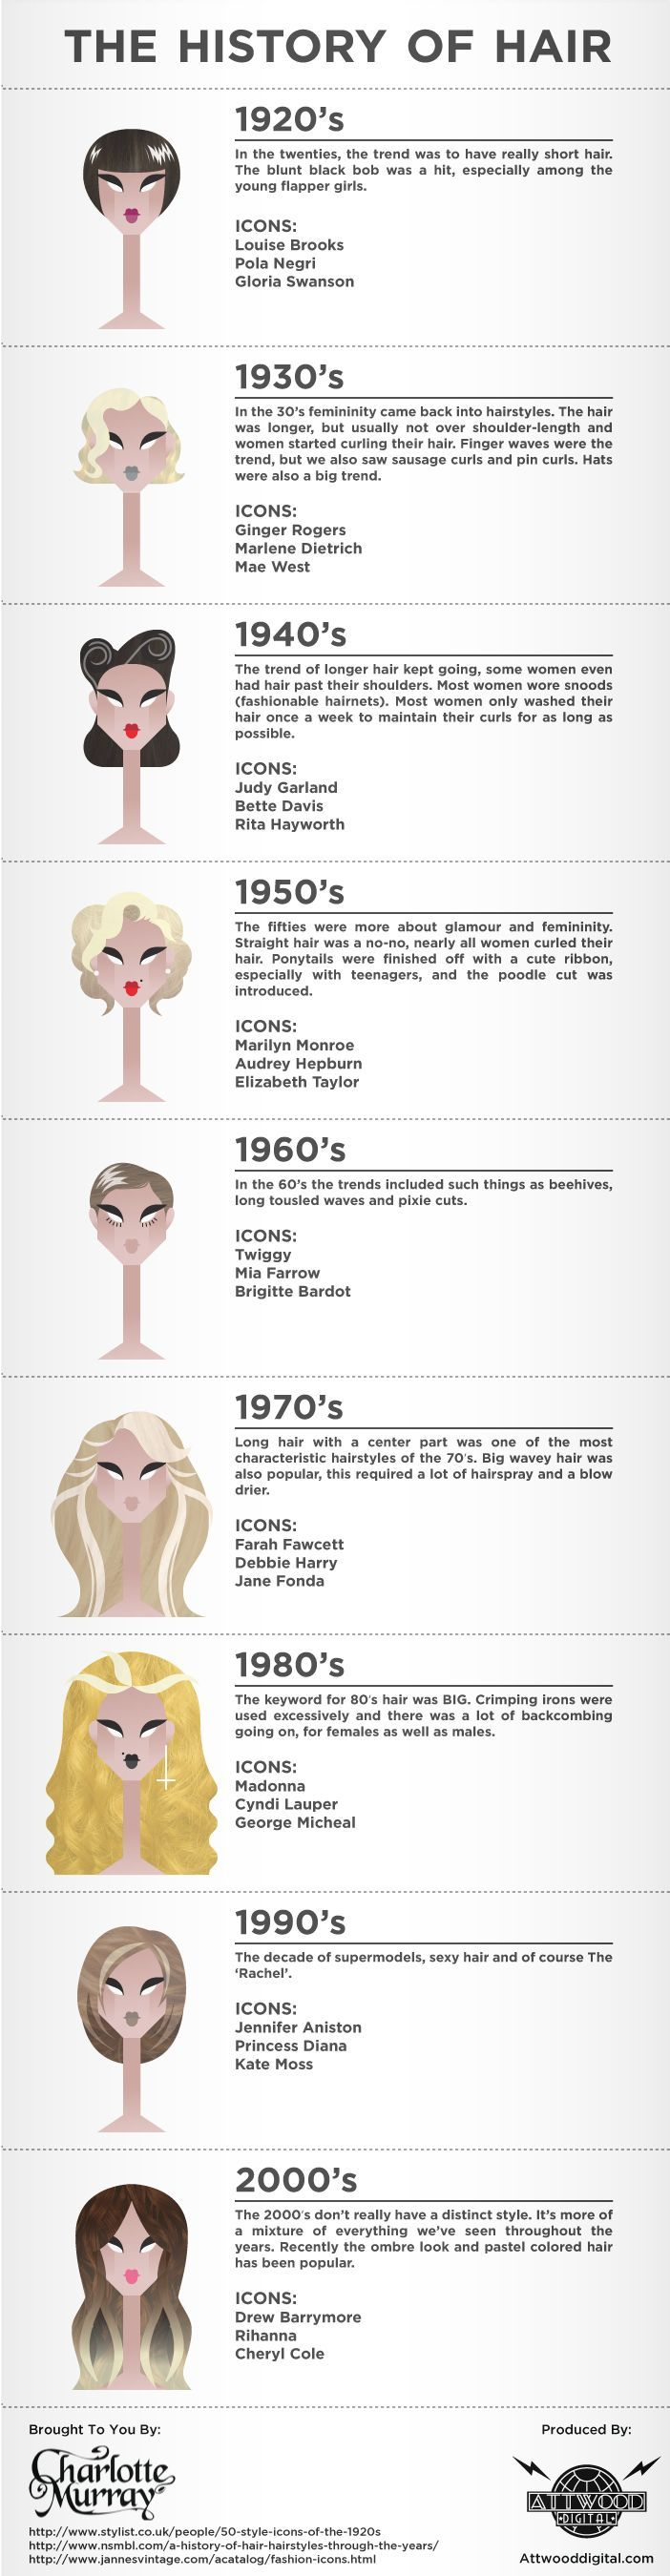 History of Hair Styles in the 20th Century